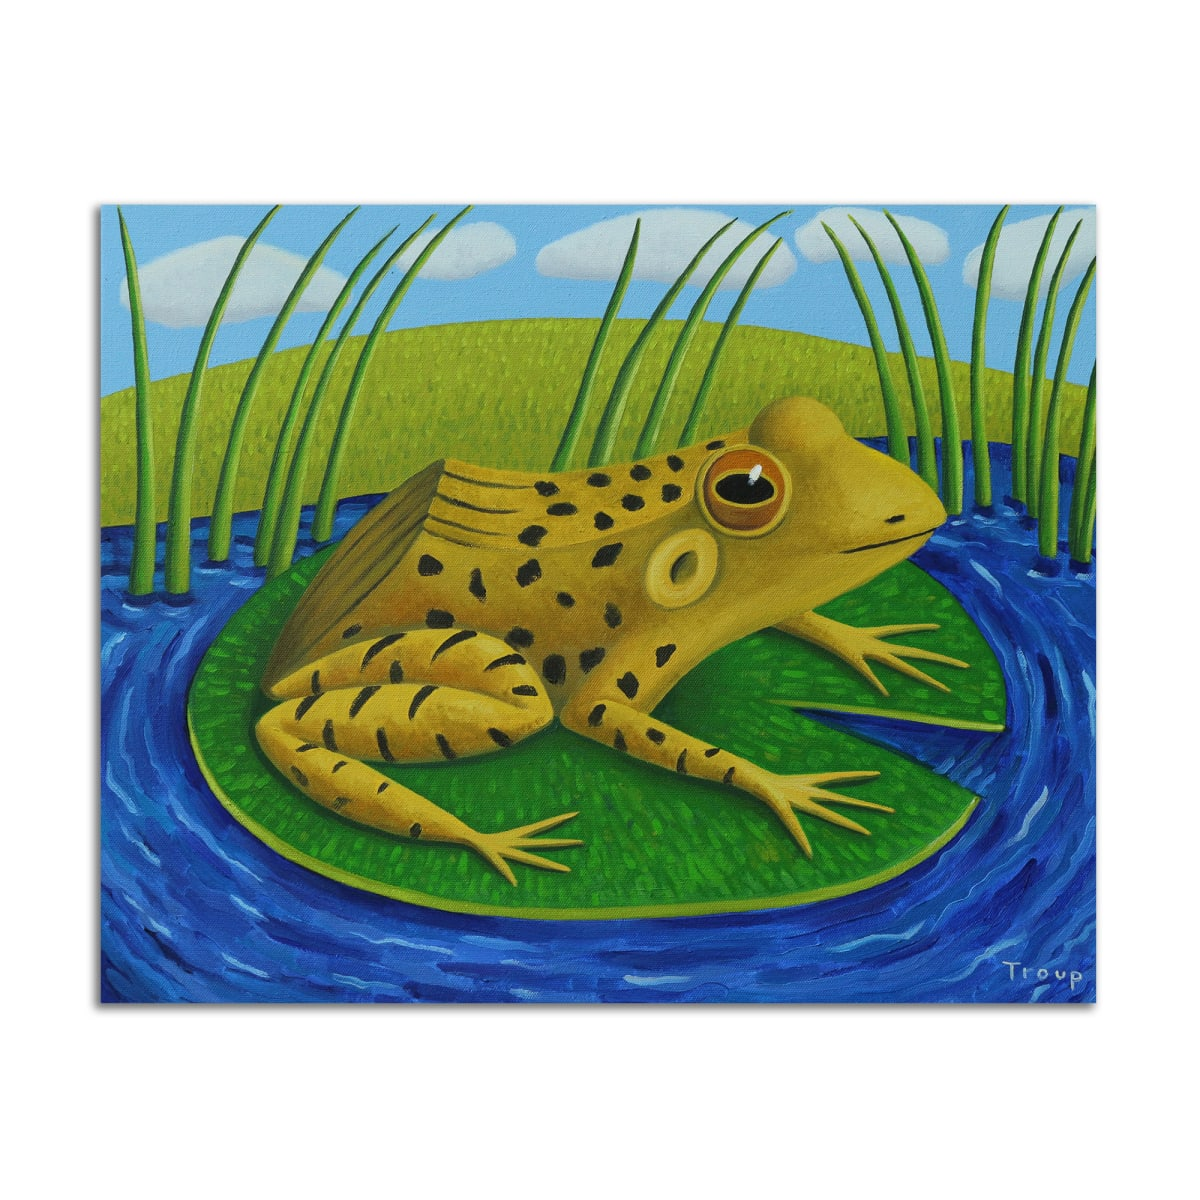 The Frog by Jane Troup